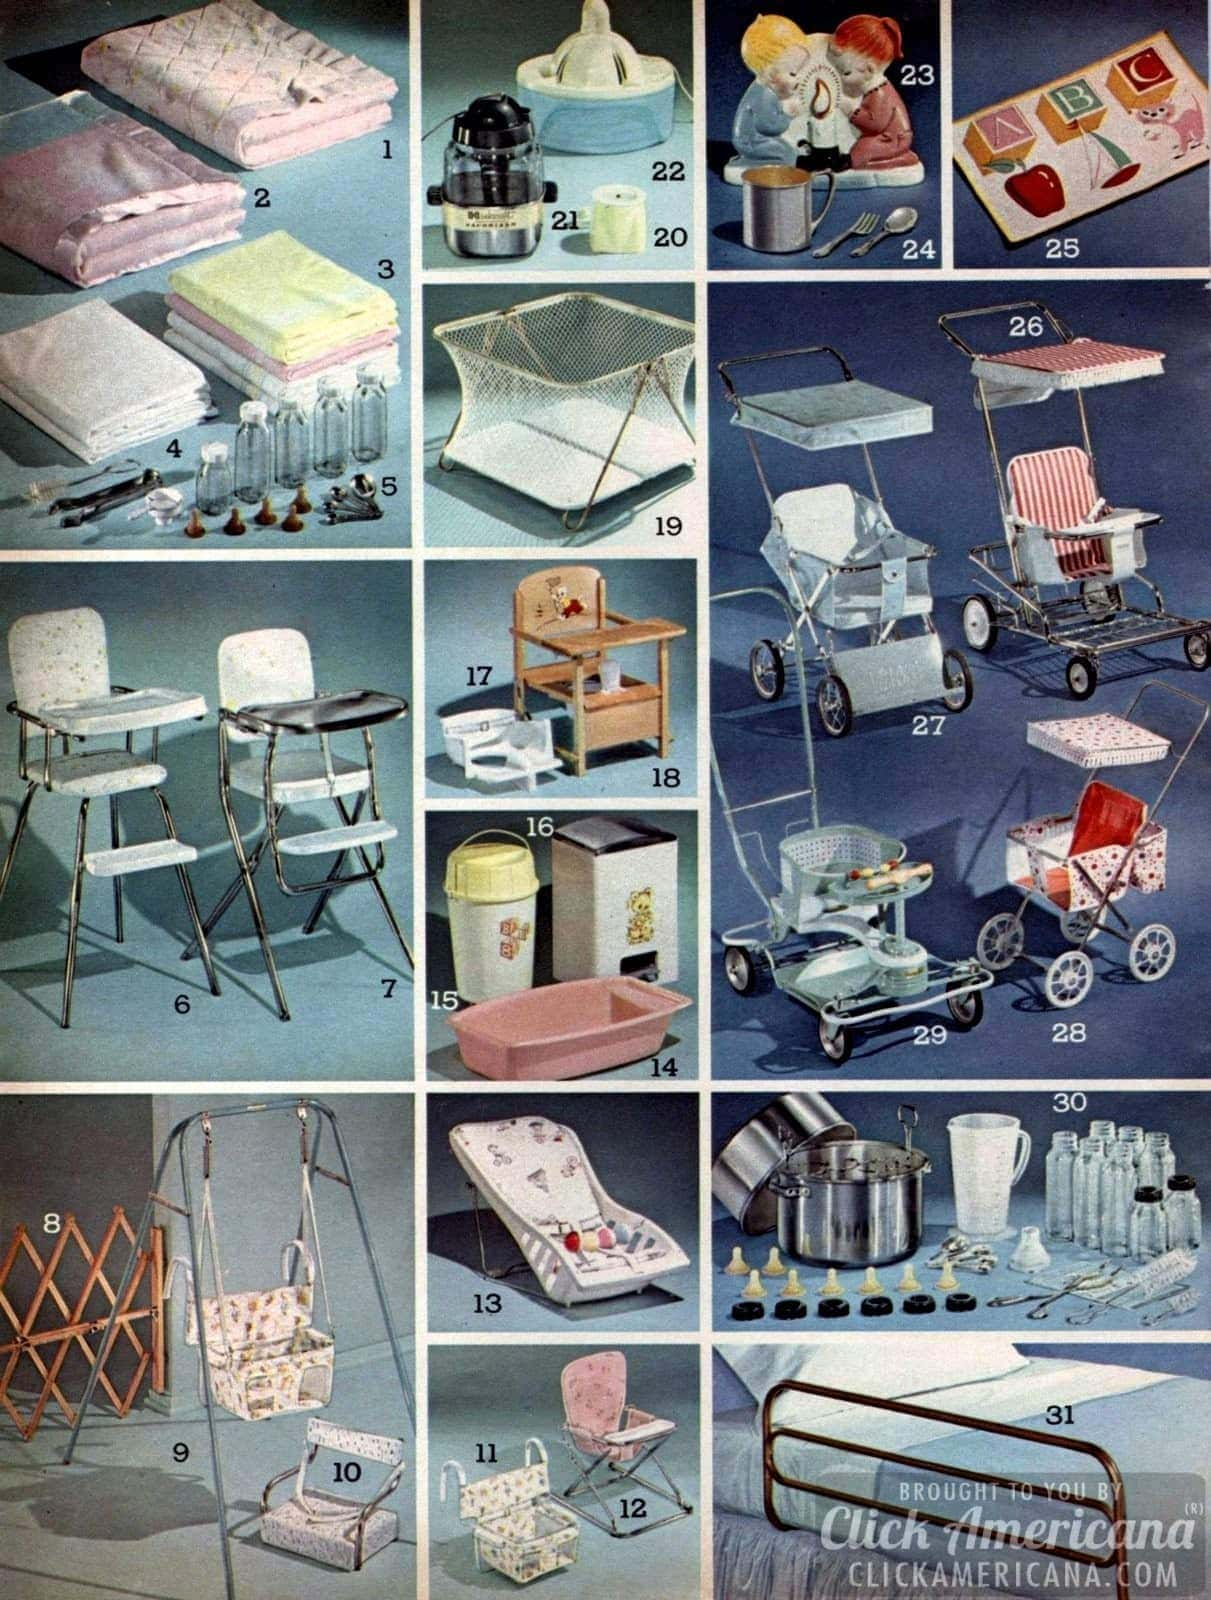 Everything for the '60s baby! Stollers, high chairs, blankets, bottles, playpens, toys, carseats, baby gates, swings and more